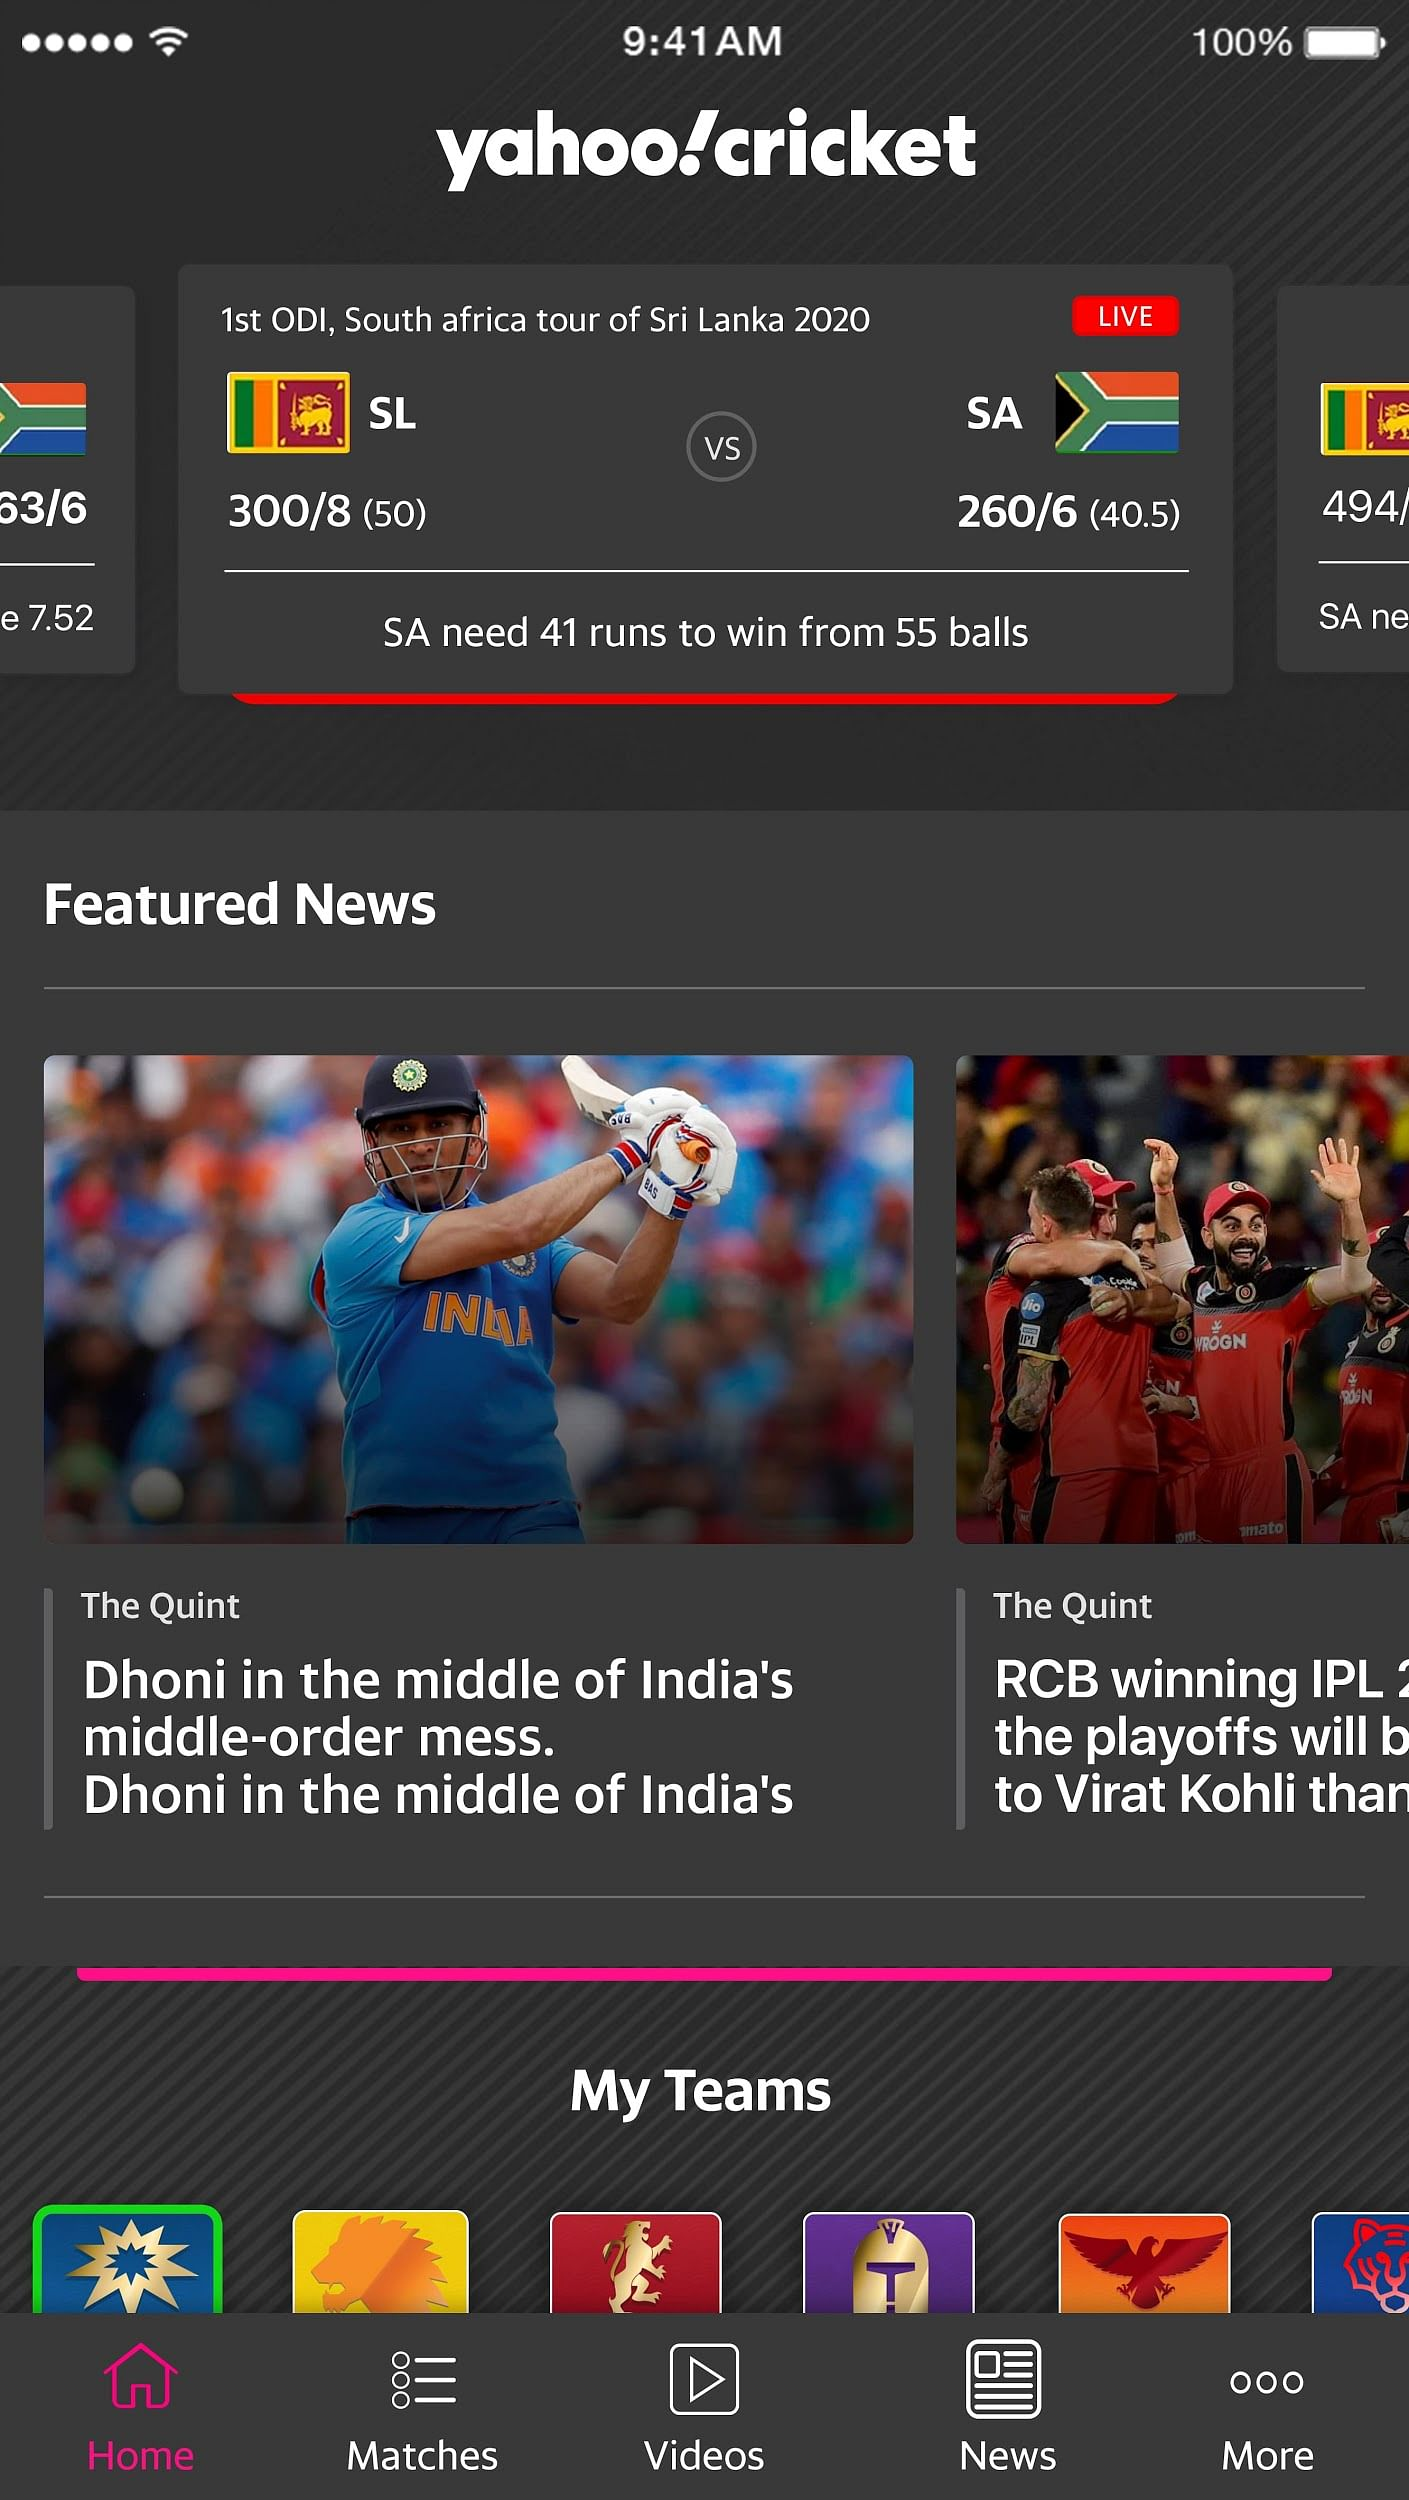 Yahoo Cricket partners with PhonePe to reach new audience of fans